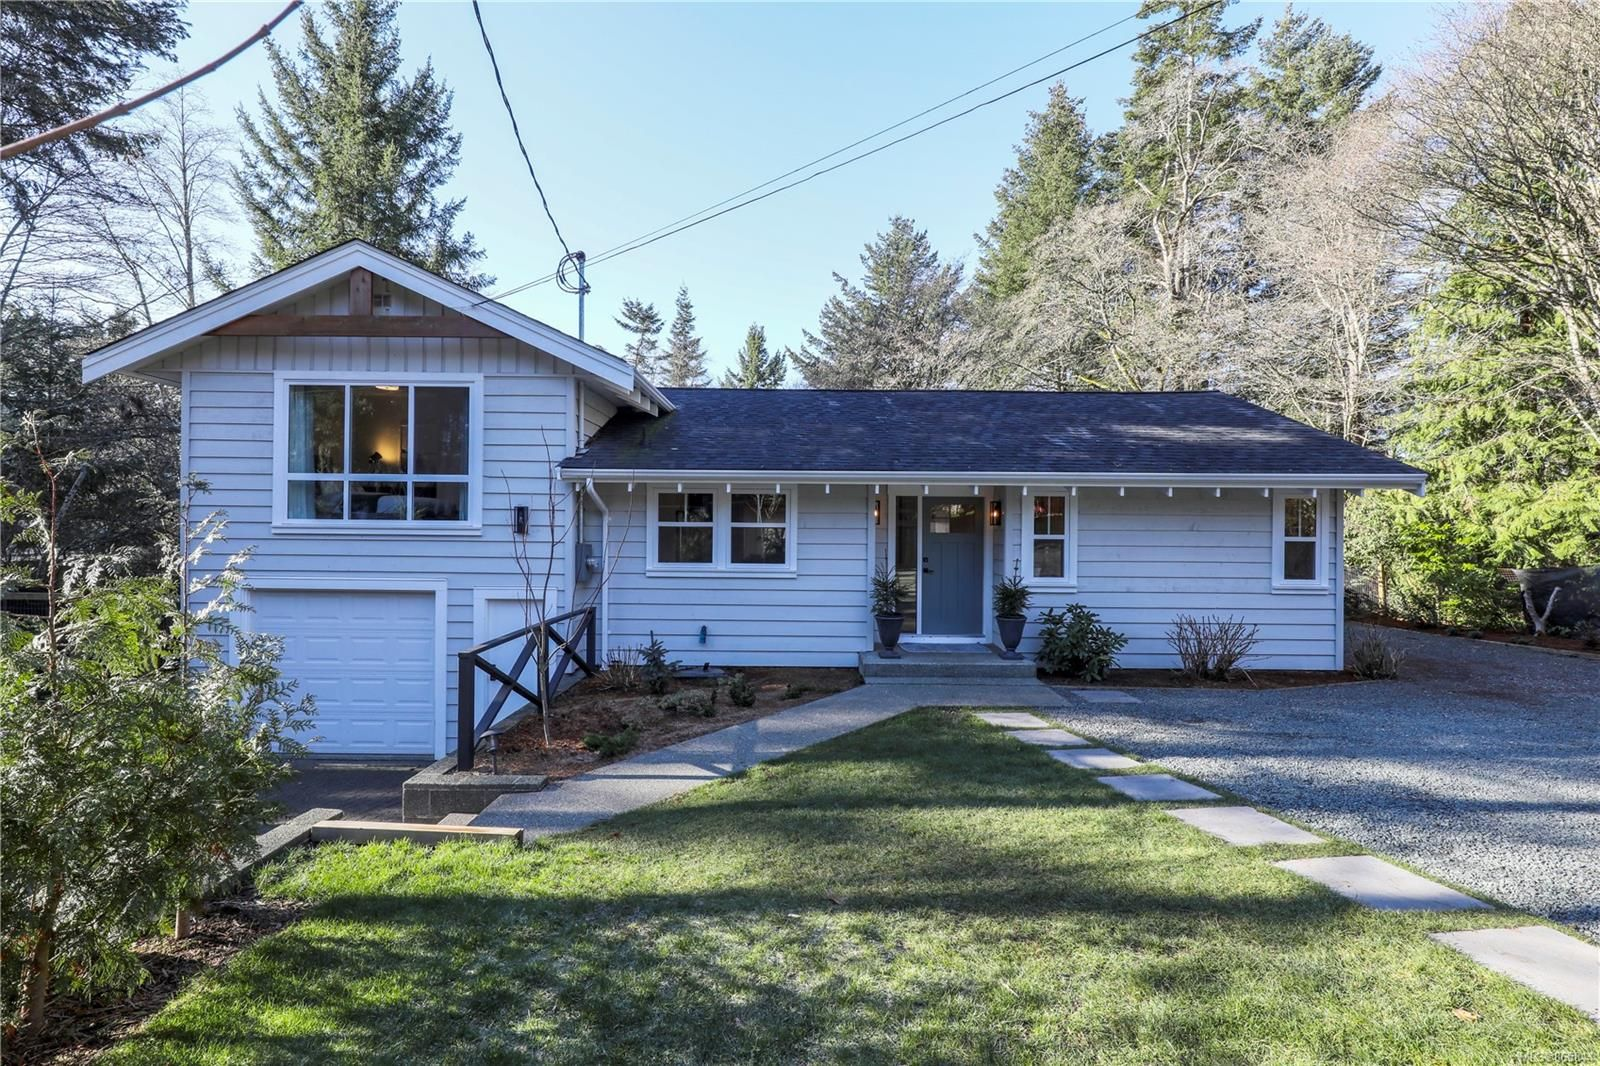 Main Photo: 271 Glacier View Dr in : CV Comox (Town of) House for sale (Comox Valley)  : MLS®# 865844